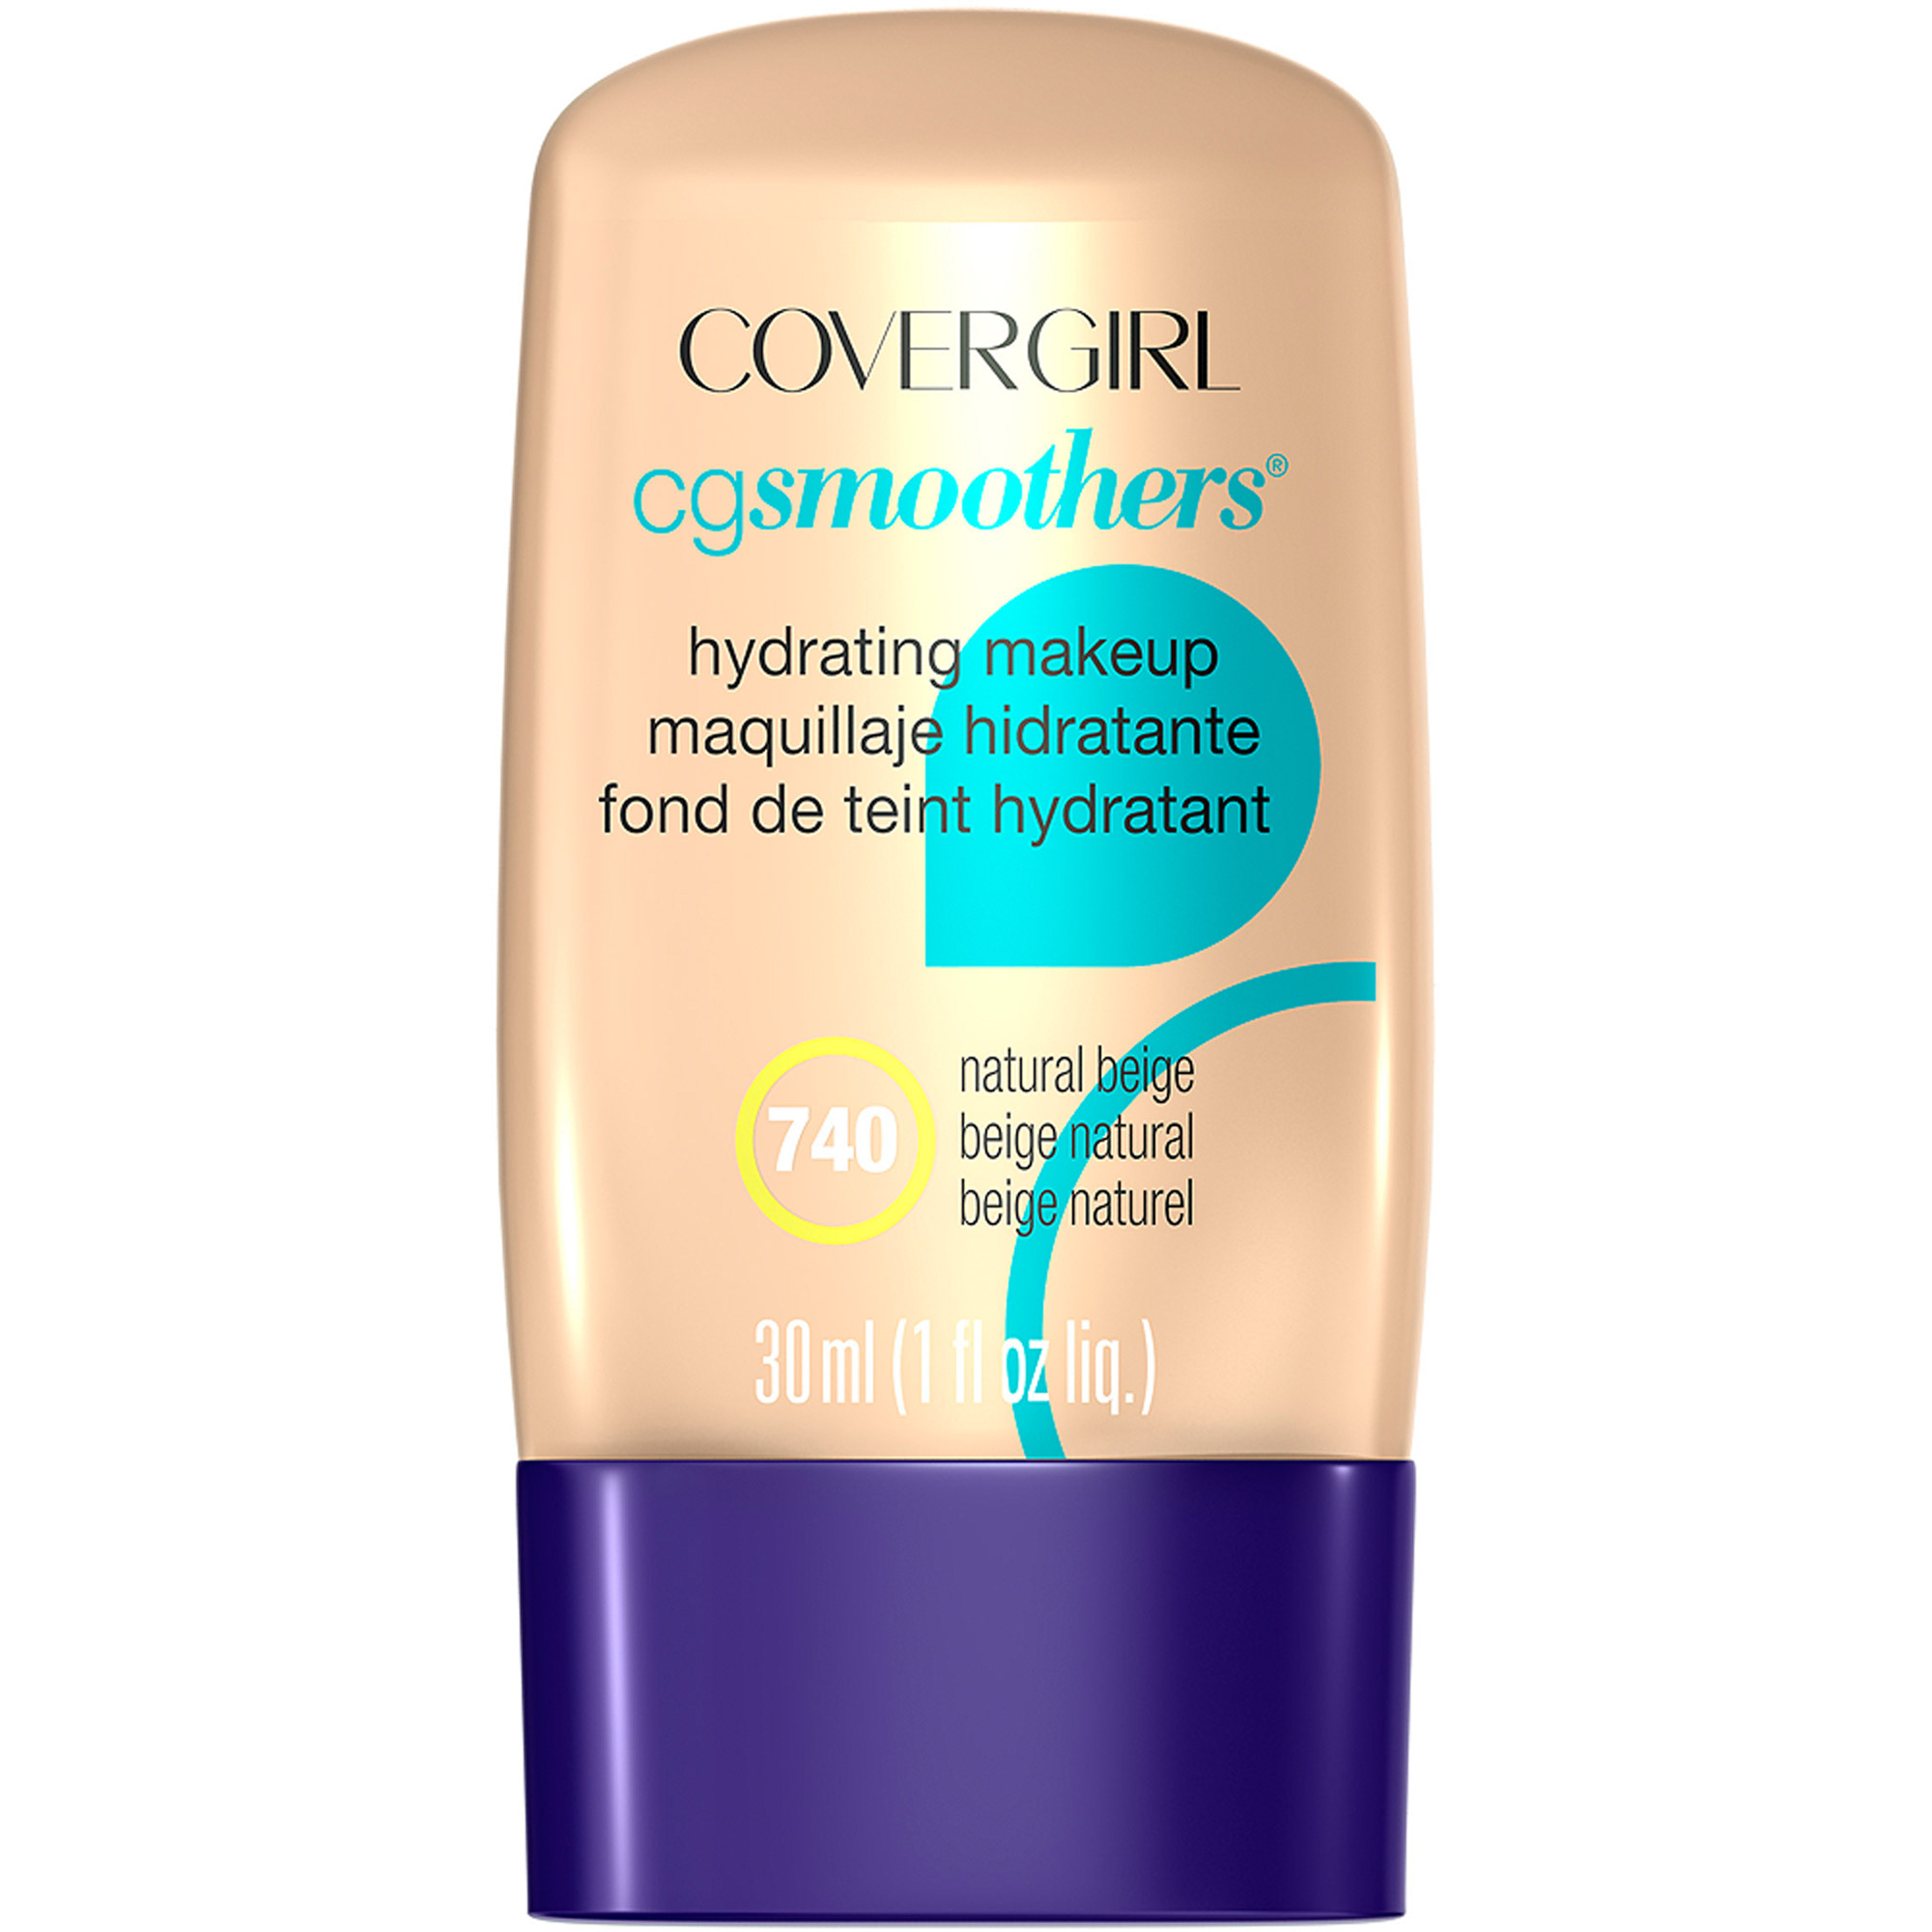 COVERGIRL Smoothers Liquid Makeup, 1 fl oz